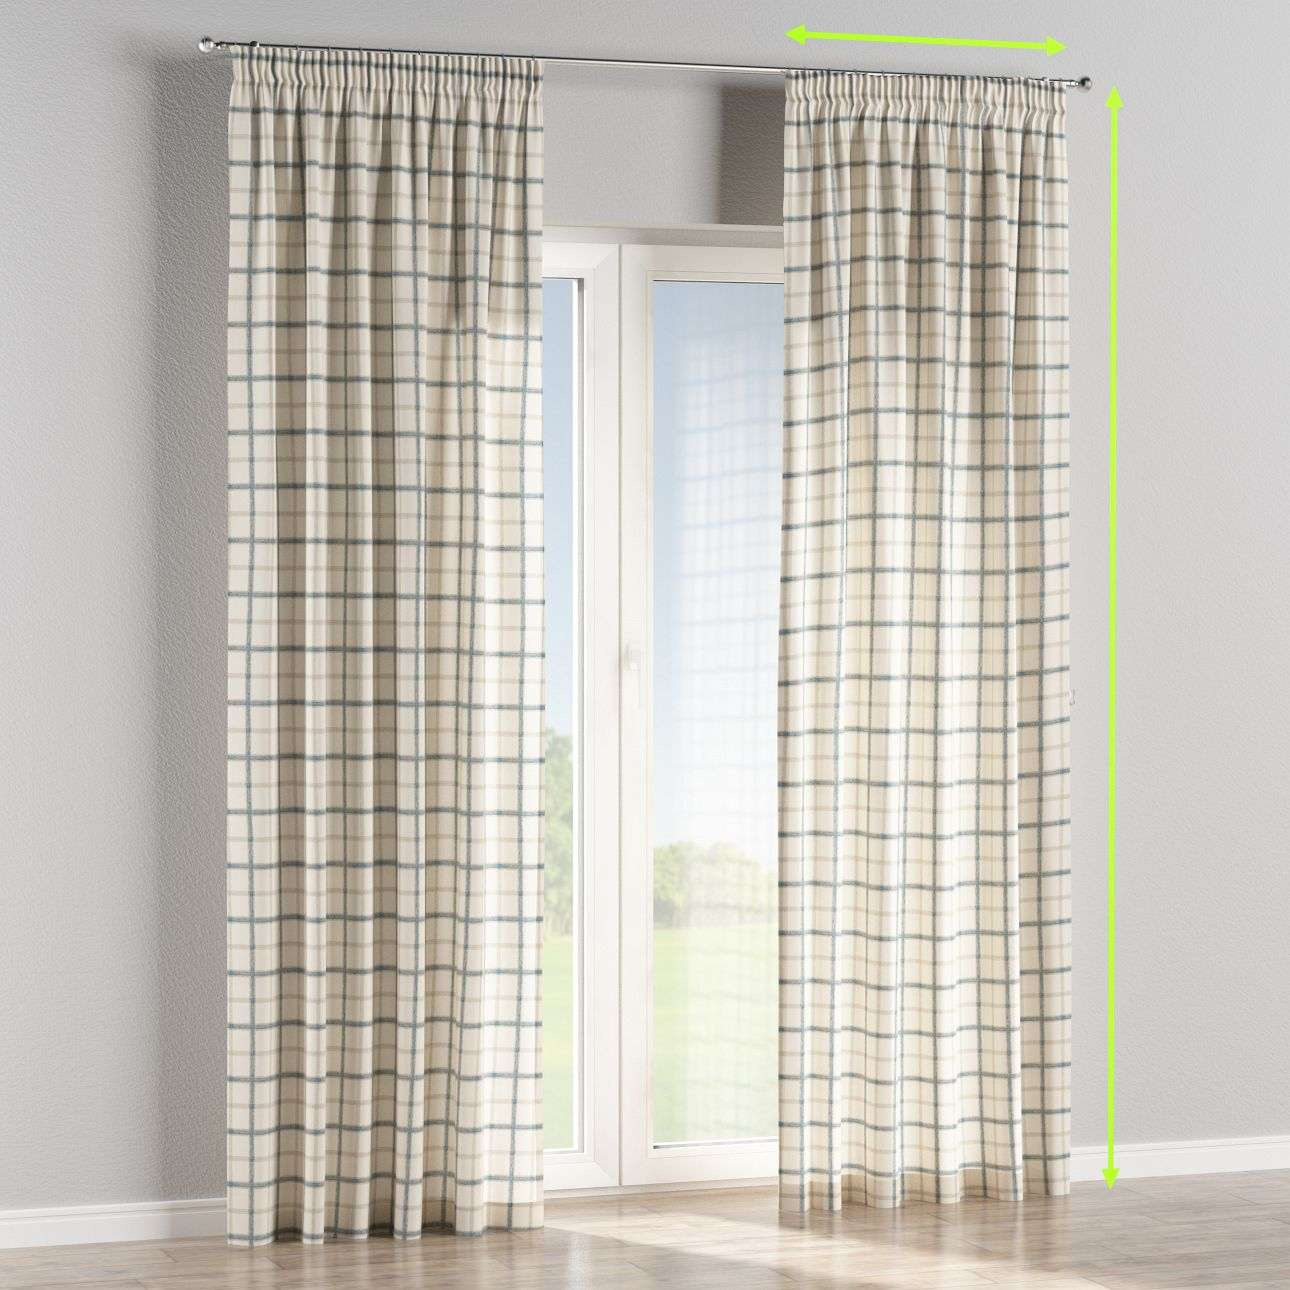 Pencil pleat lined curtains in collection Avinon, fabric: 131-66